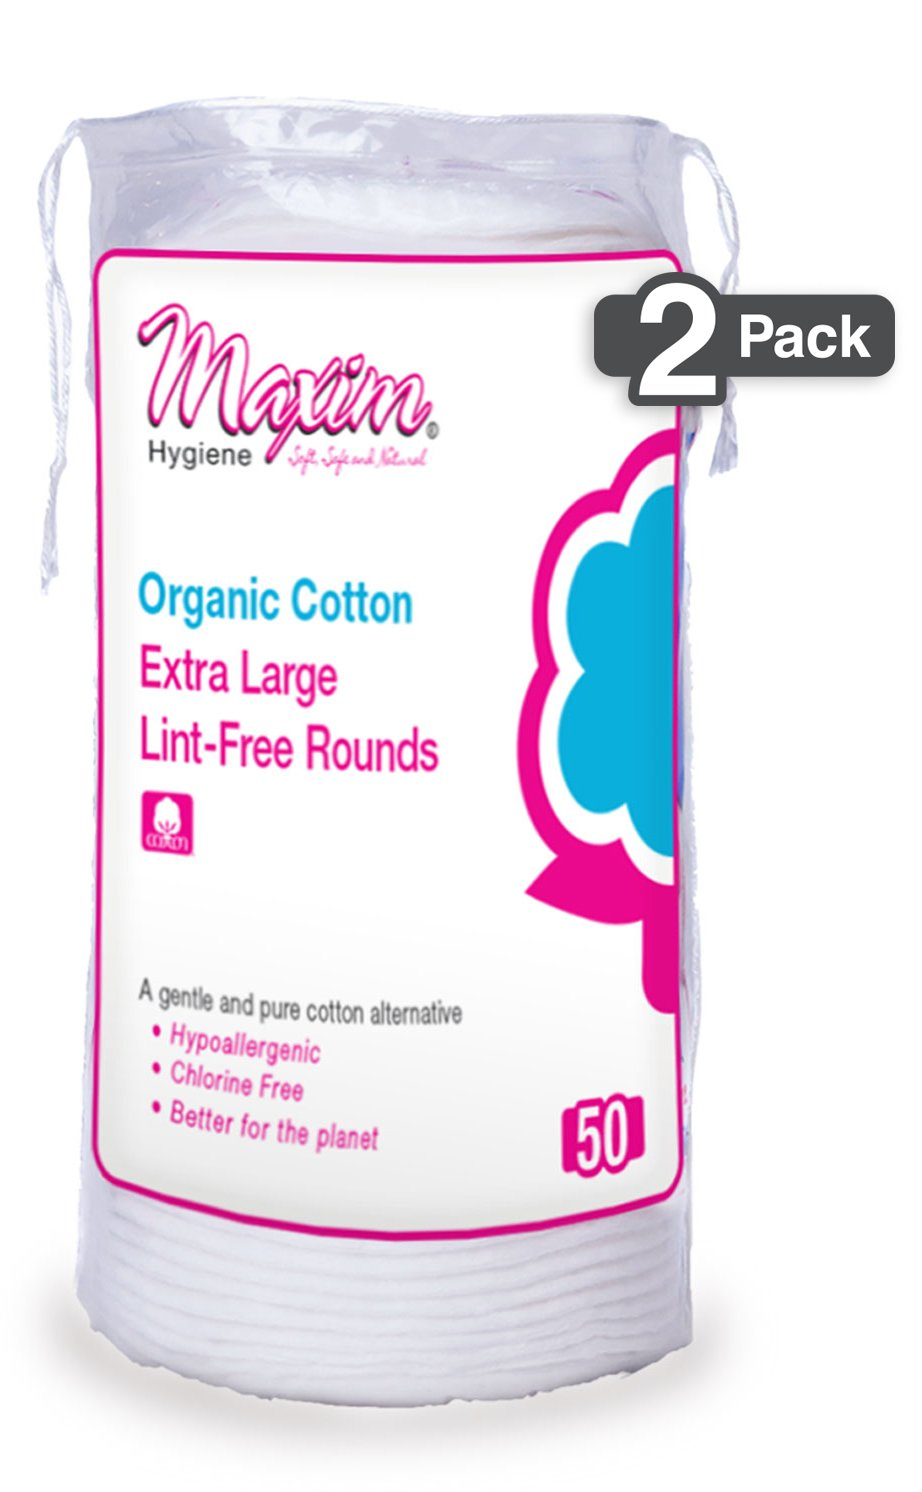 Organic Makeup Remover Pads by Maxim (100 Count): Extra Large 100% Natural White Cotton Rounds - Hypoallergenic for Sensitive Skin - Chlorine Free, Chemical Free